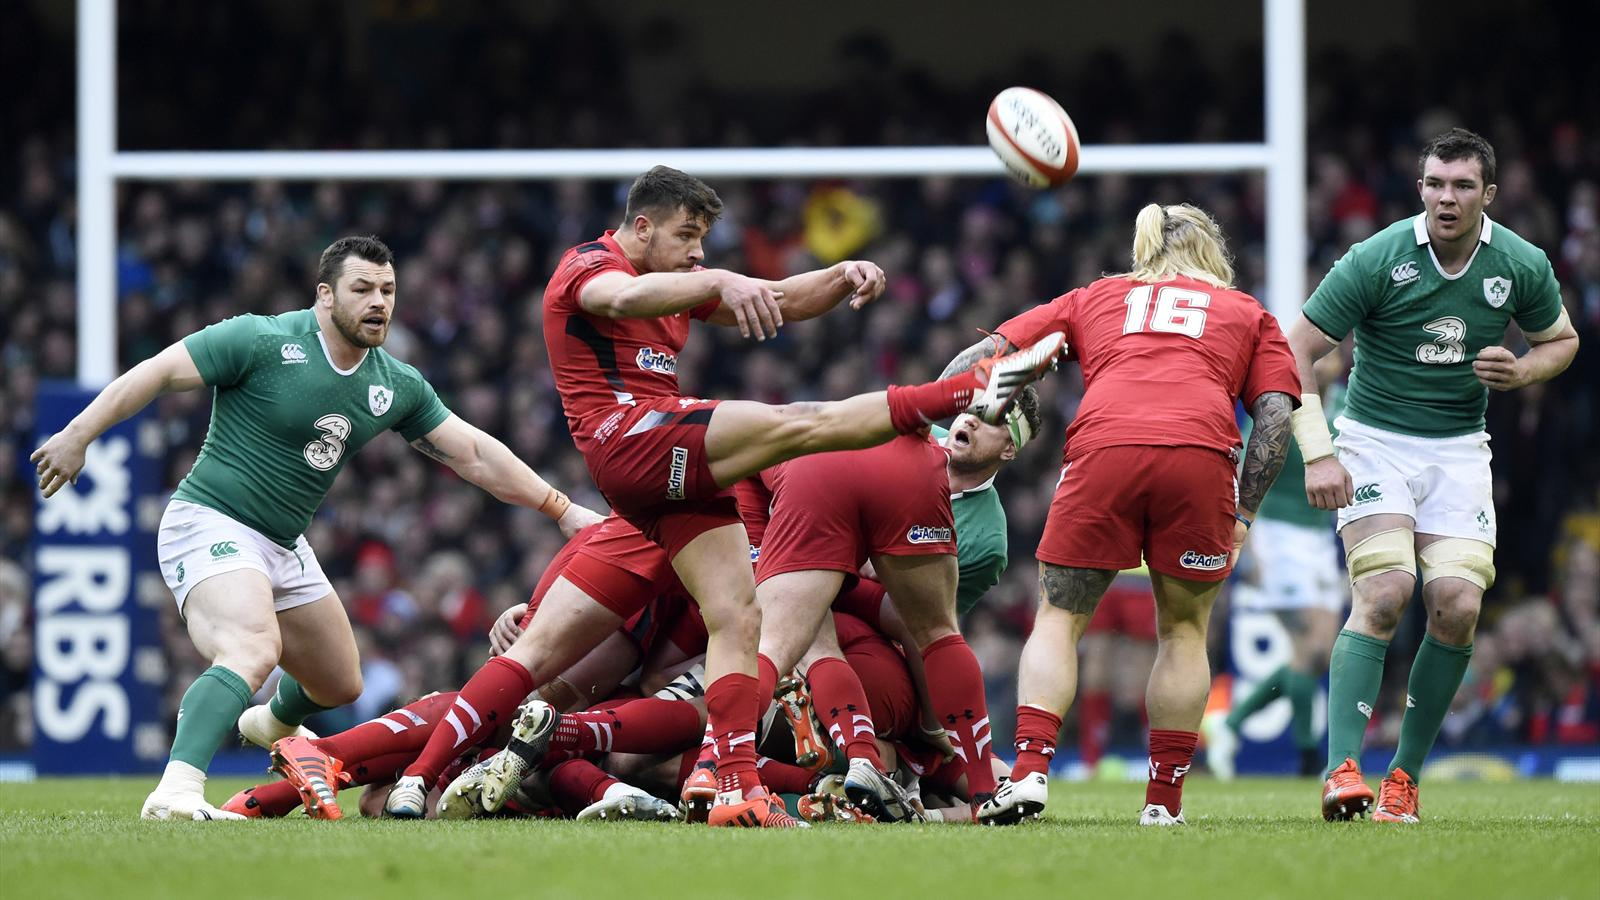 Rhys webb to miss start of six nations six nations 2016 - Rugby six nations results table ...